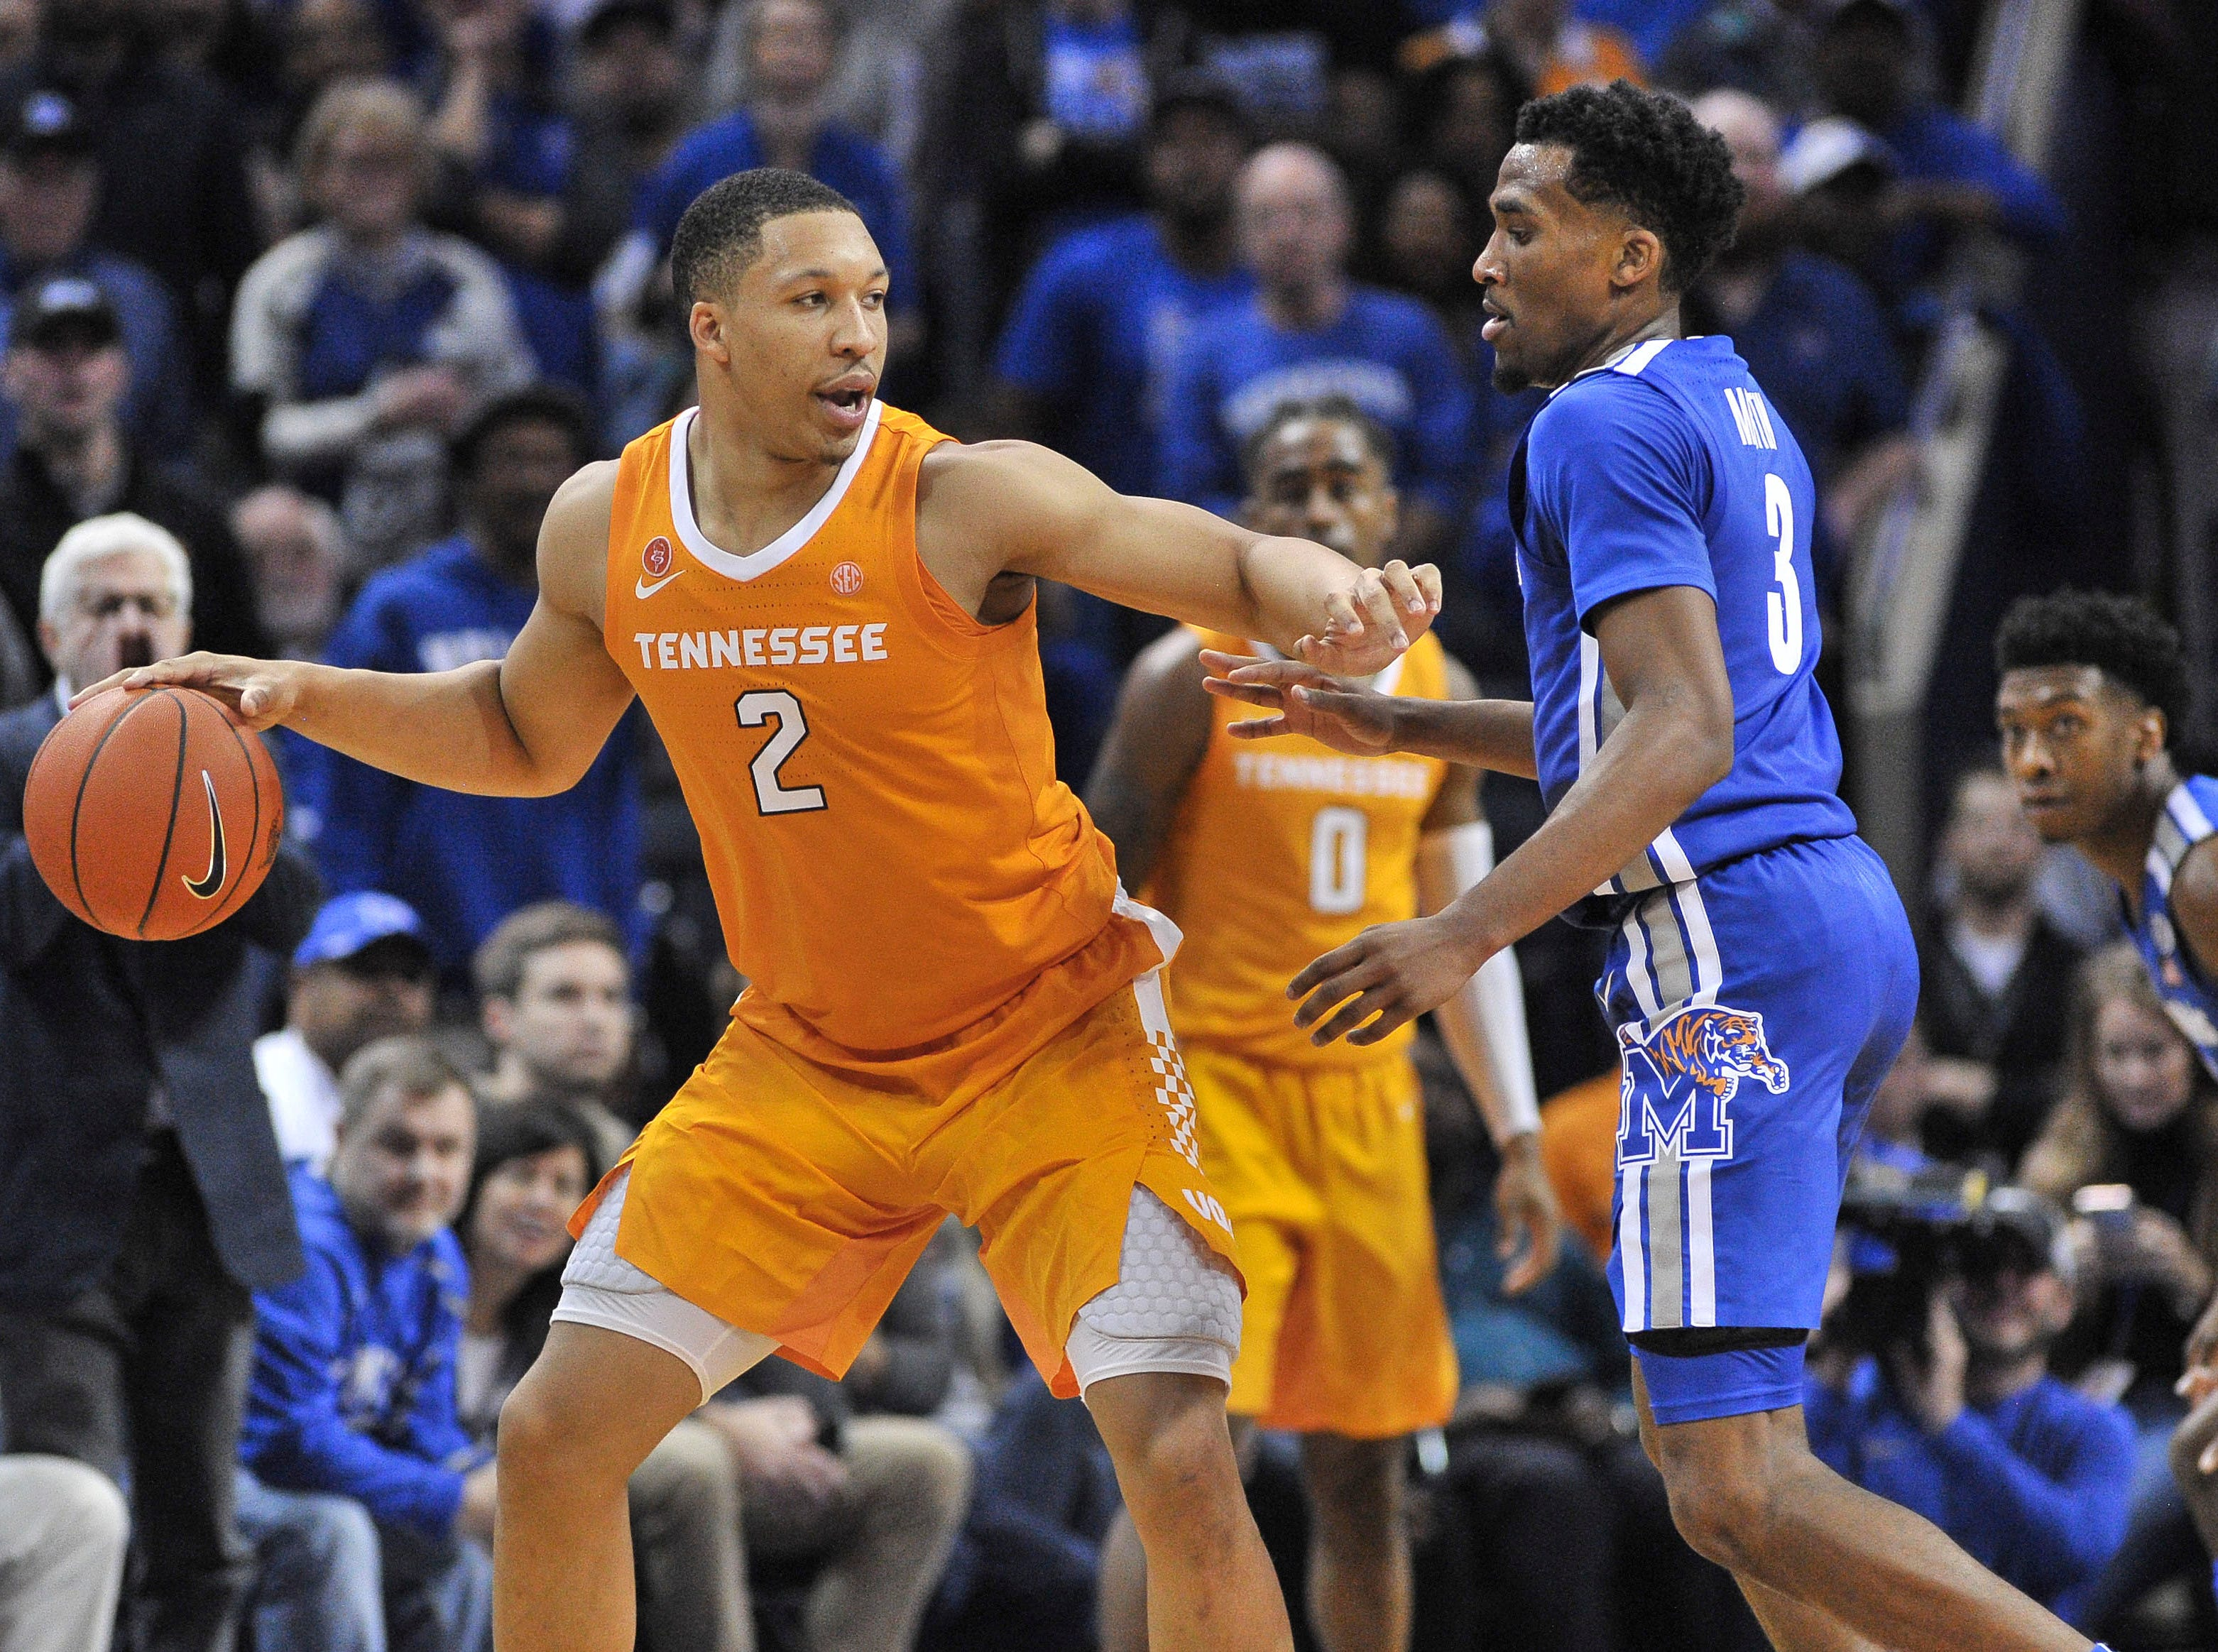 Dec 15, 2018; Memphis, TN, USA; Tennessee Volunteers forward Grant Williams (2) dribbles the ball as Memphis Tigers guard Jeremiah Martin (3) defends during the second half at FedExForum. Mandatory Credit: Justin Ford-USA TODAY Sports